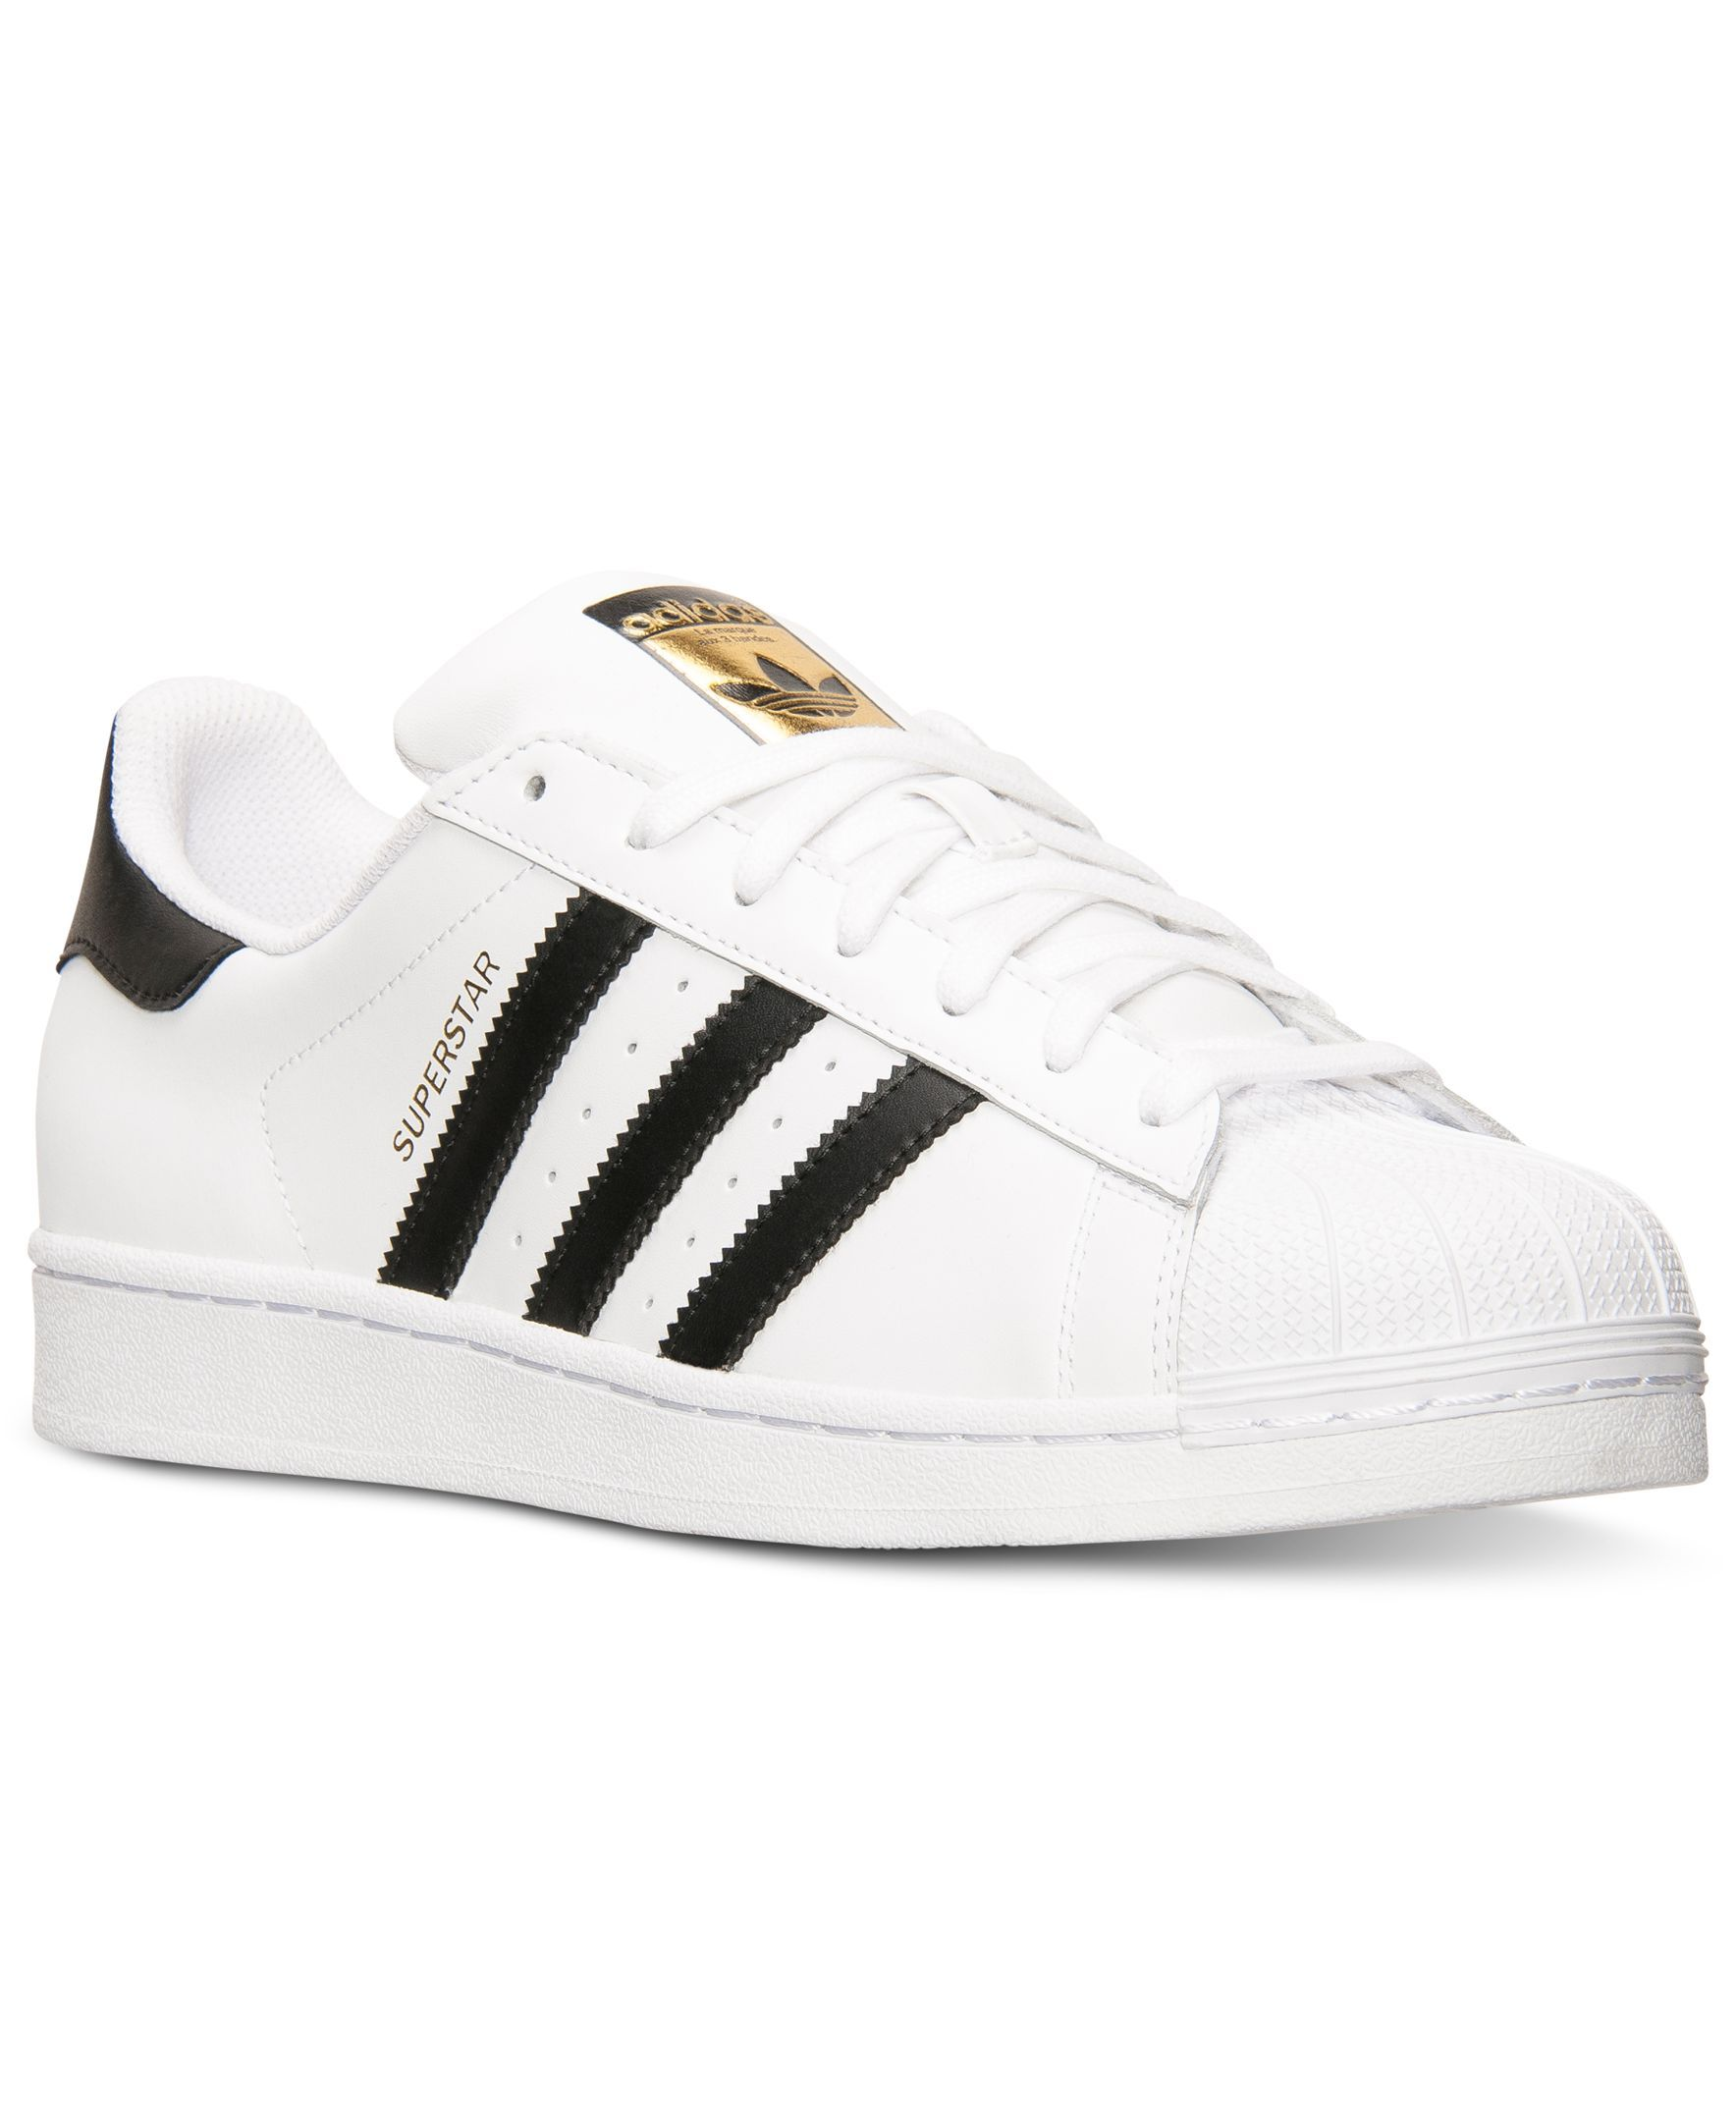 adidas Men s Superstar Casual Sneakers from Finish Line 76949c590